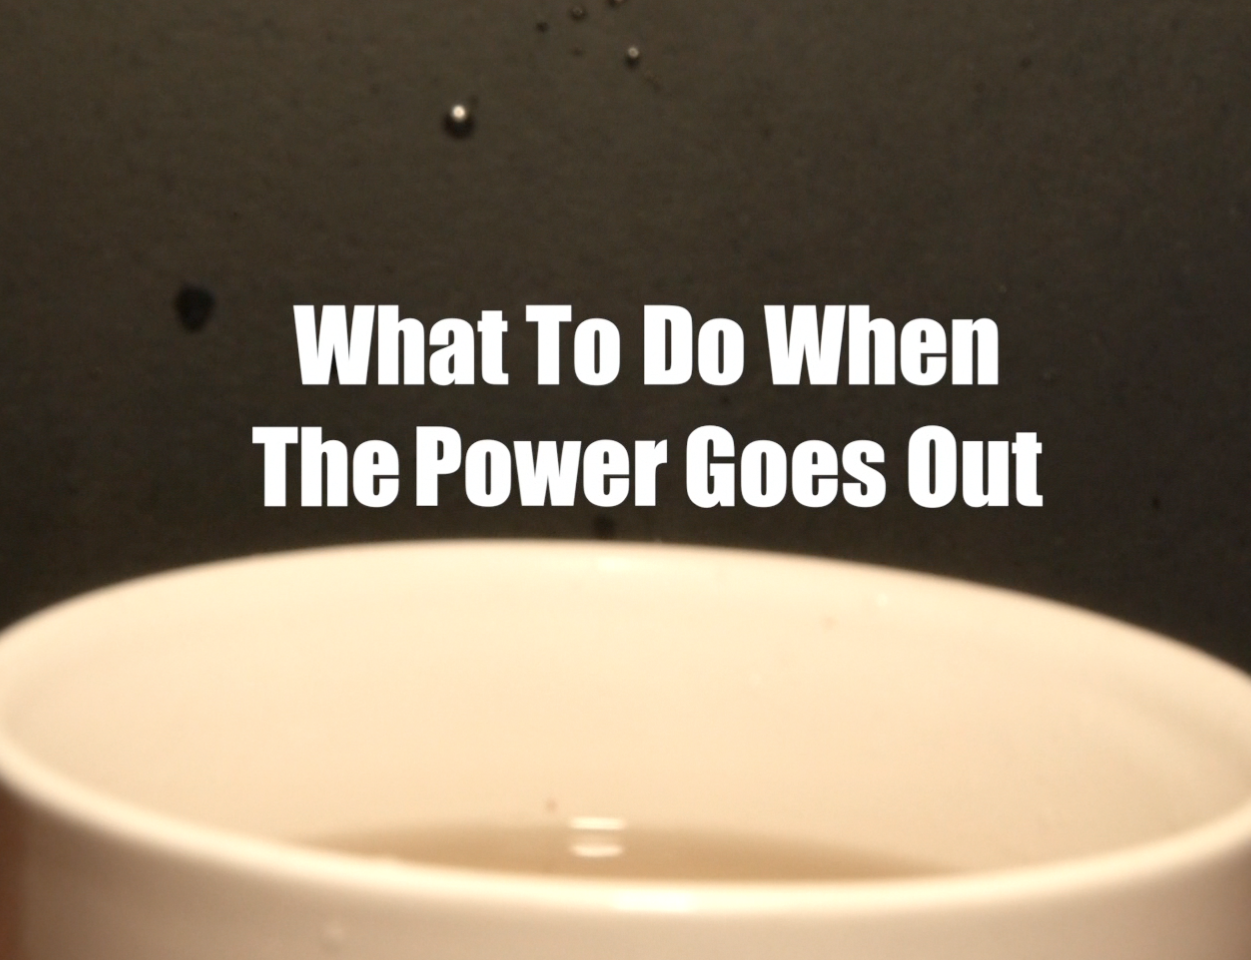 What To Do When The Power Goes Out